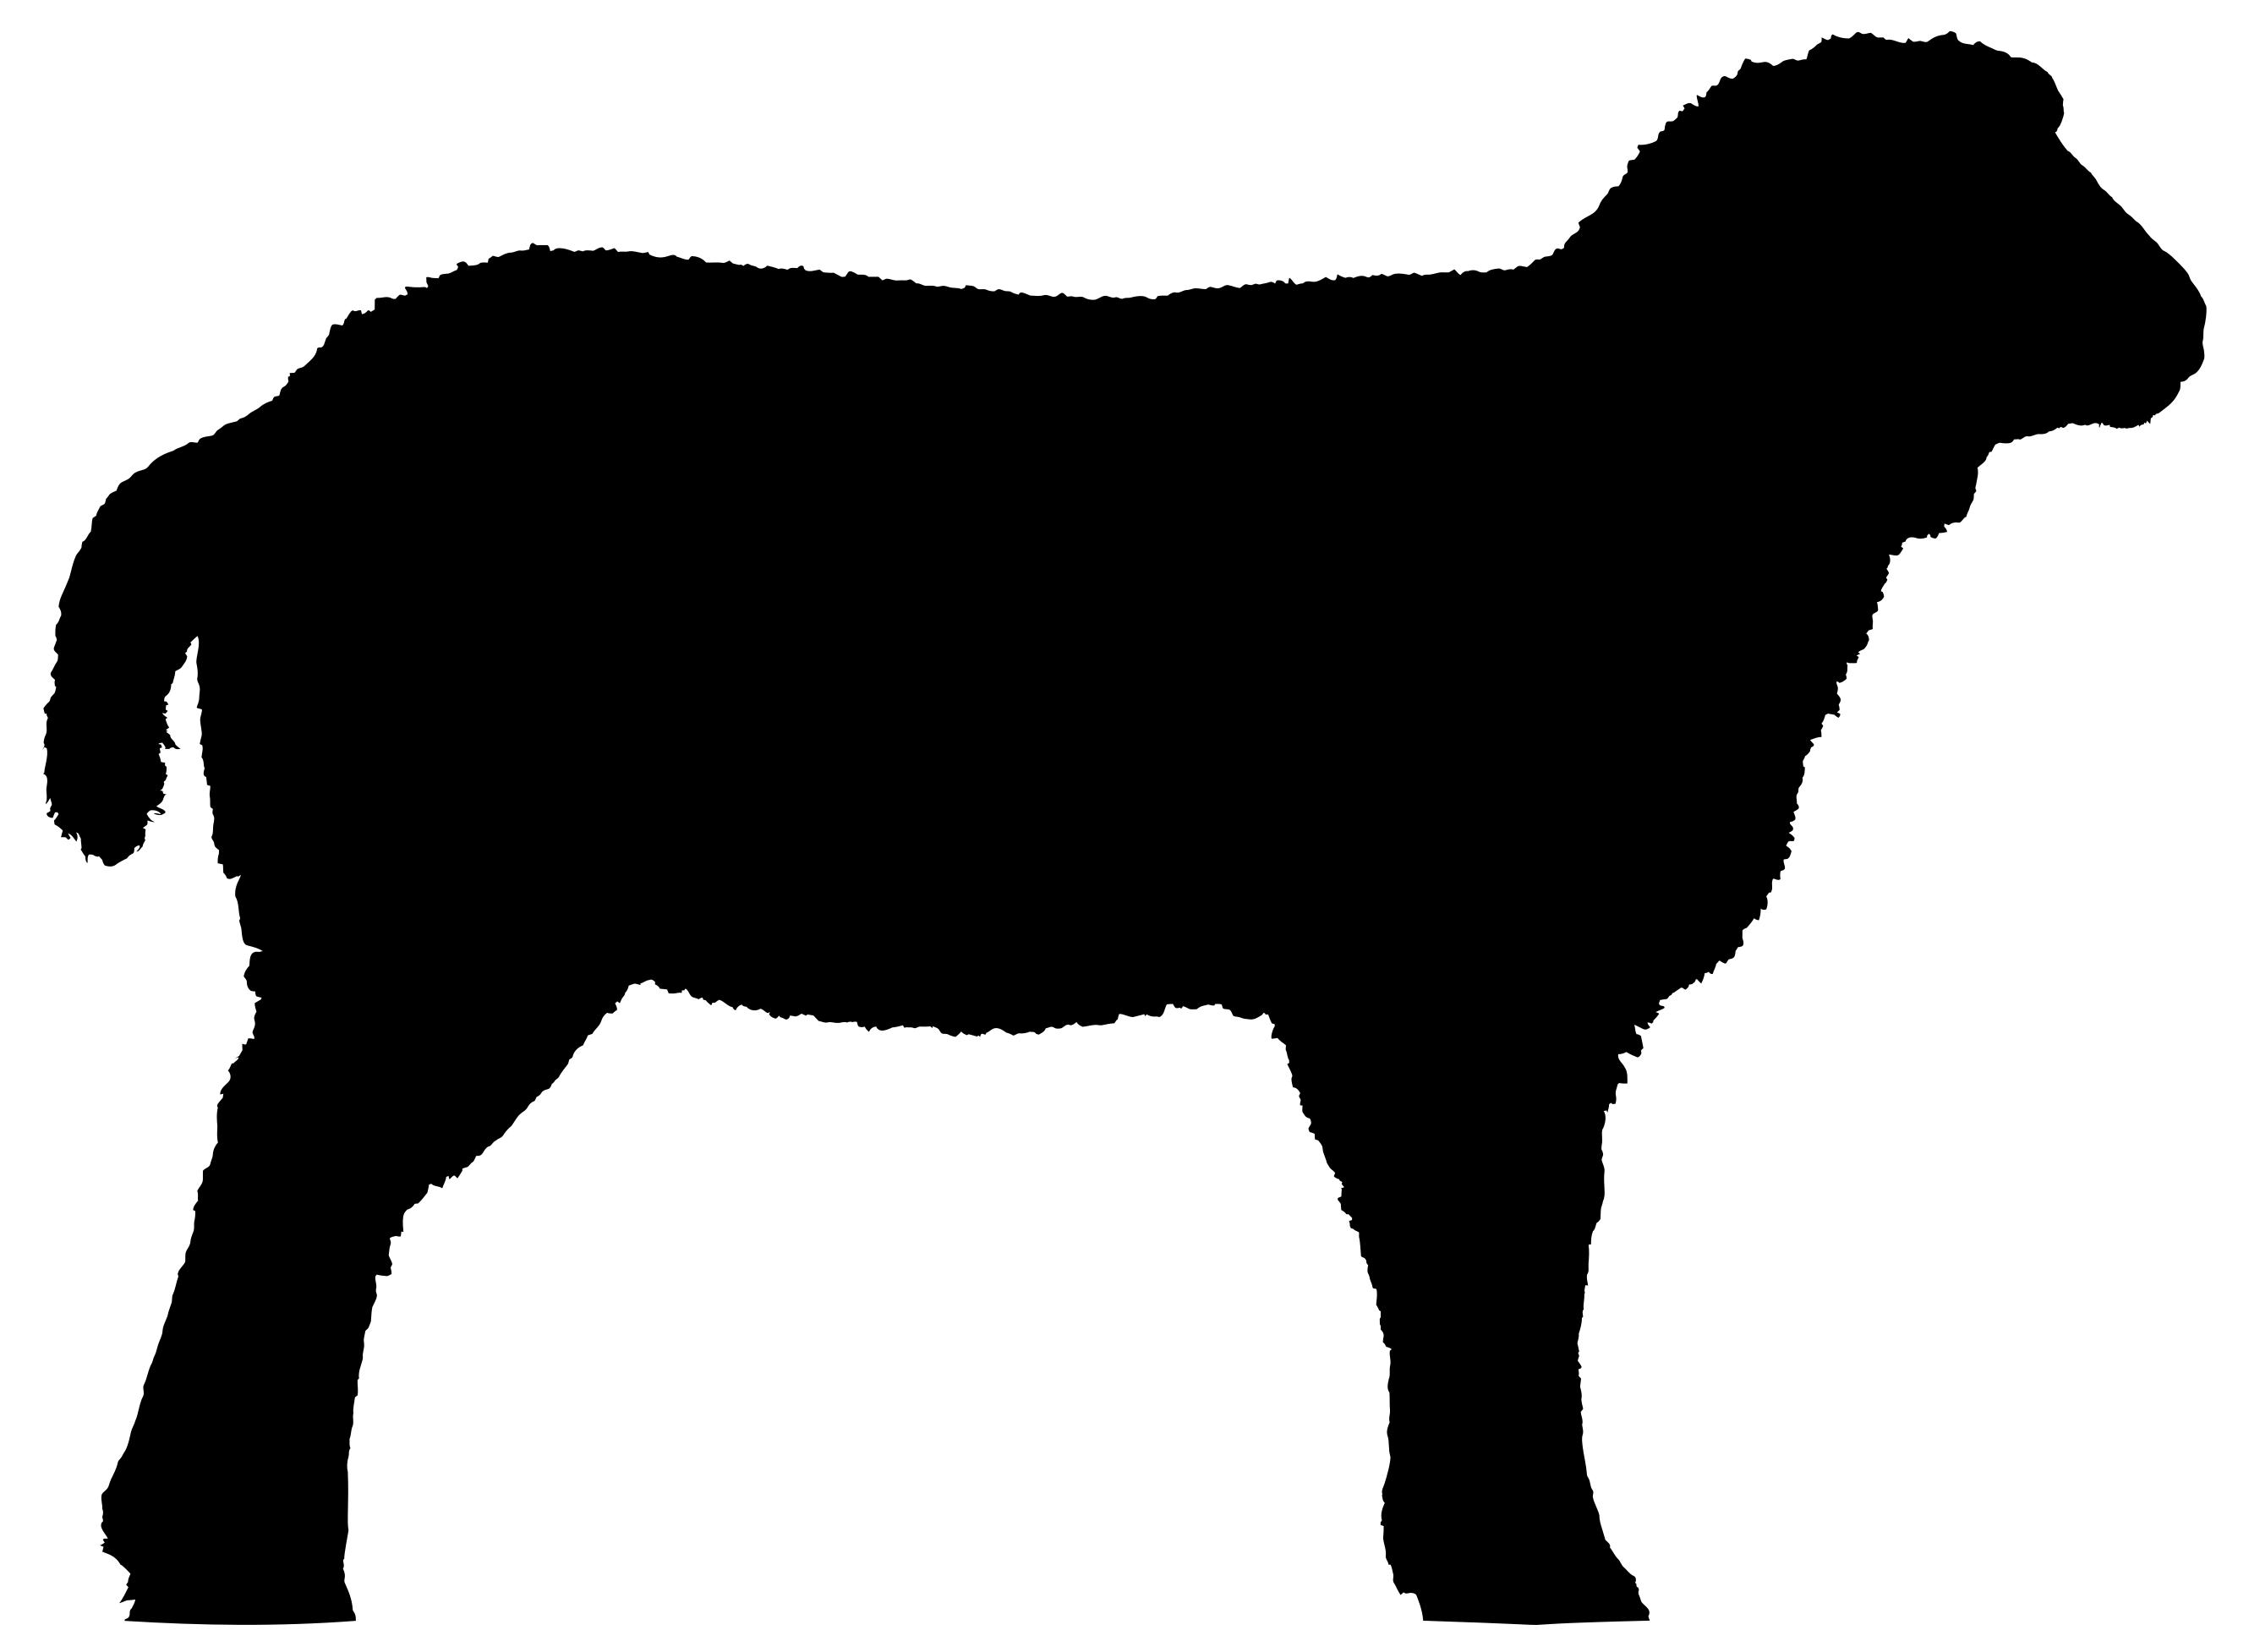 sheep silhouette clip art at getdrawings com free for personal use rh getdrawings com clipart of sheepshead clip art of sheet music